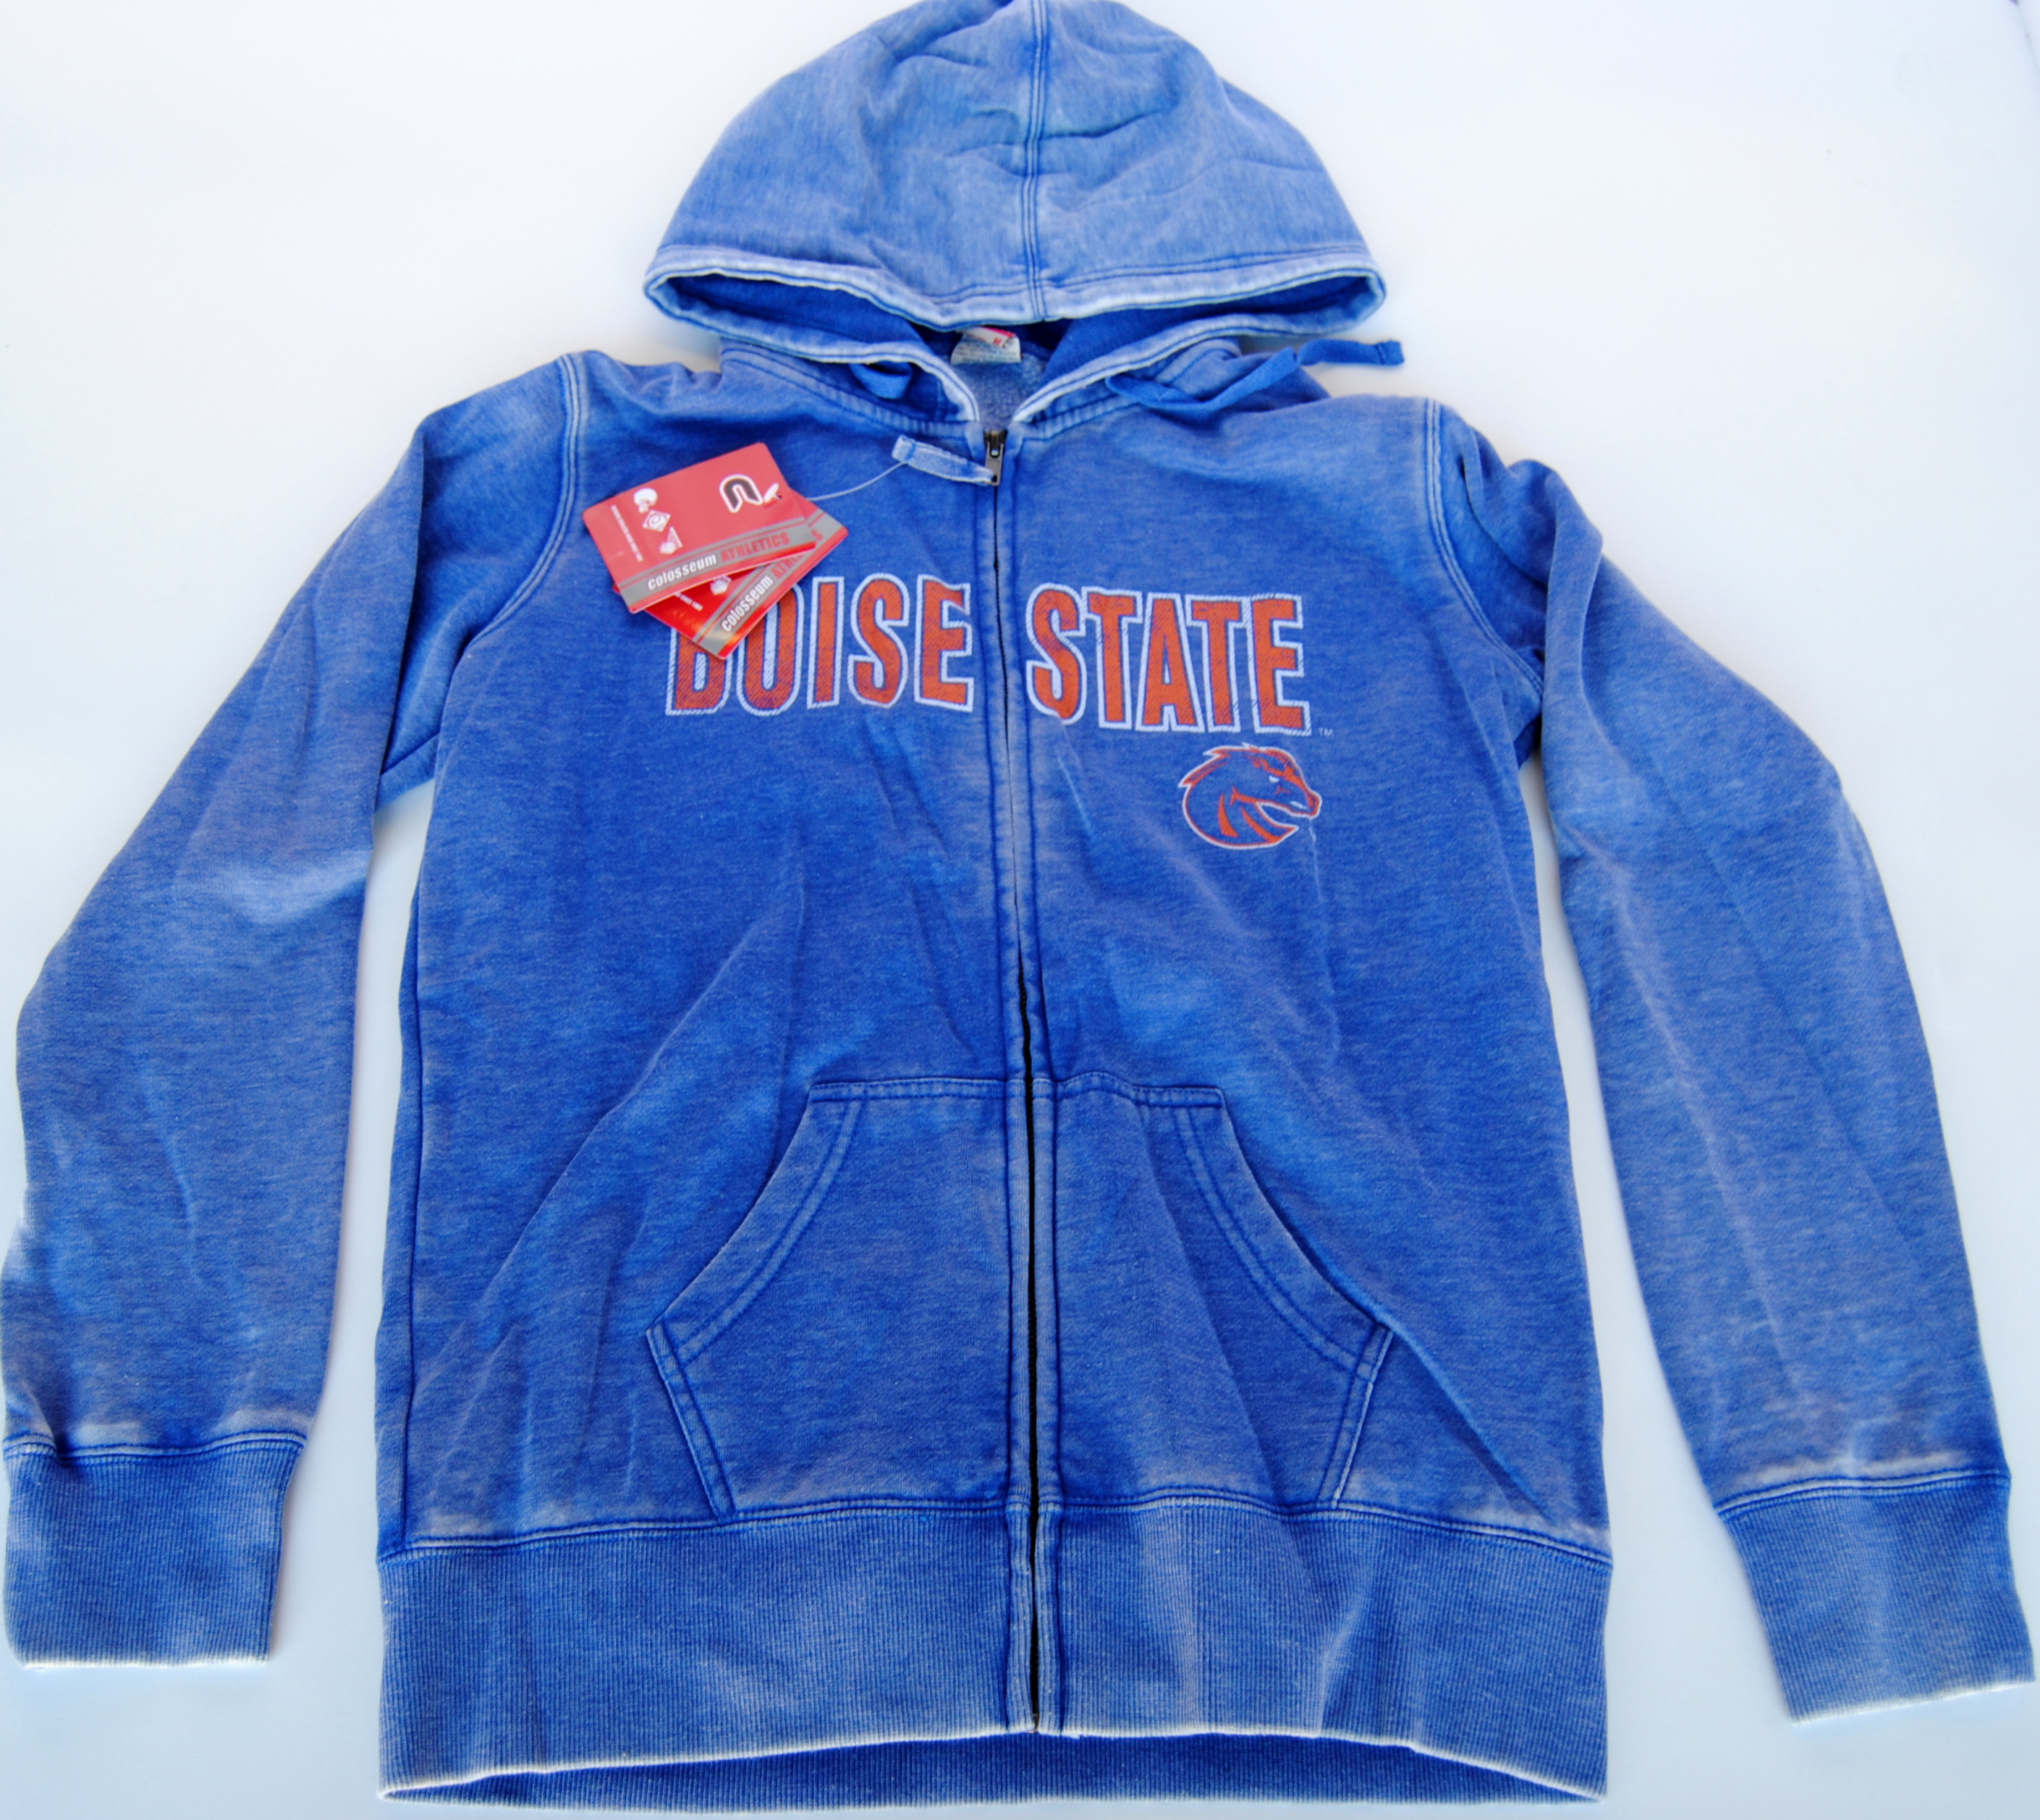 Colosseum Athletics Boise State Broncos Colosseum Blue Women's Zip Front Hooded Sweatshirt (M) at Sears.com